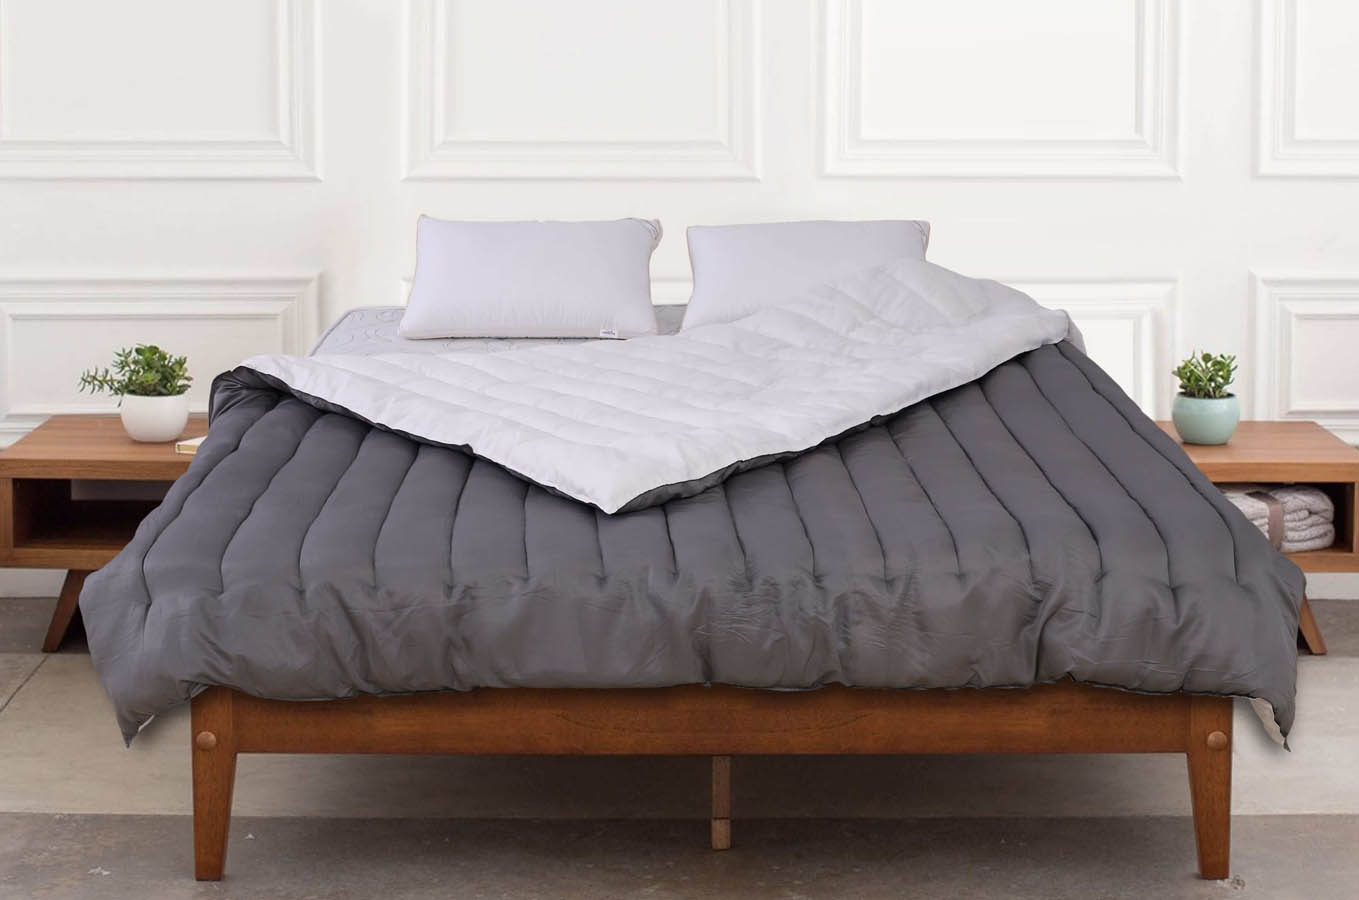 Buy soft duvet online in india - springtek